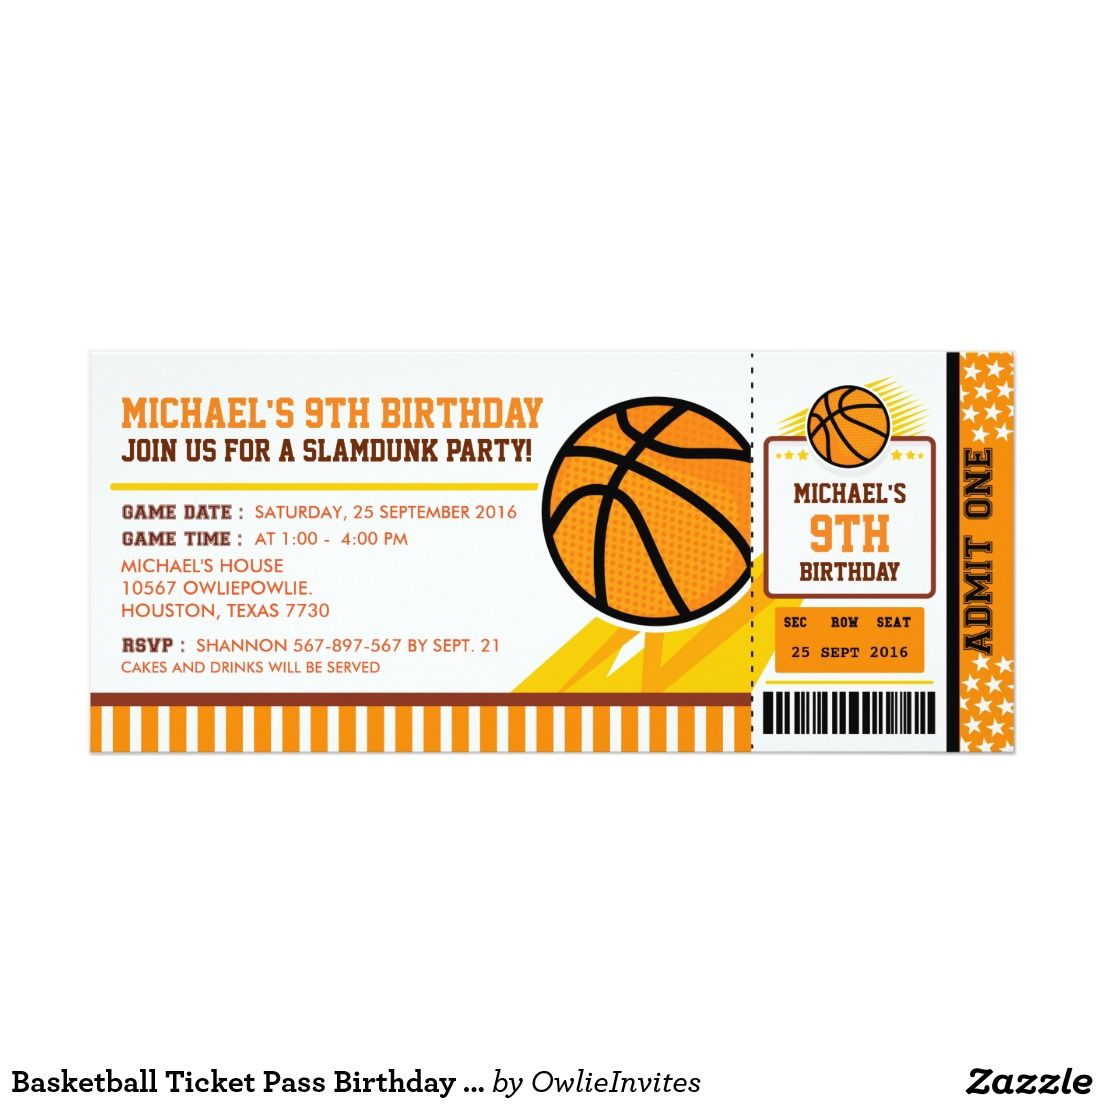 Basketball Ticket Pass Birthday Invitation | Basketball | Pinterest ...